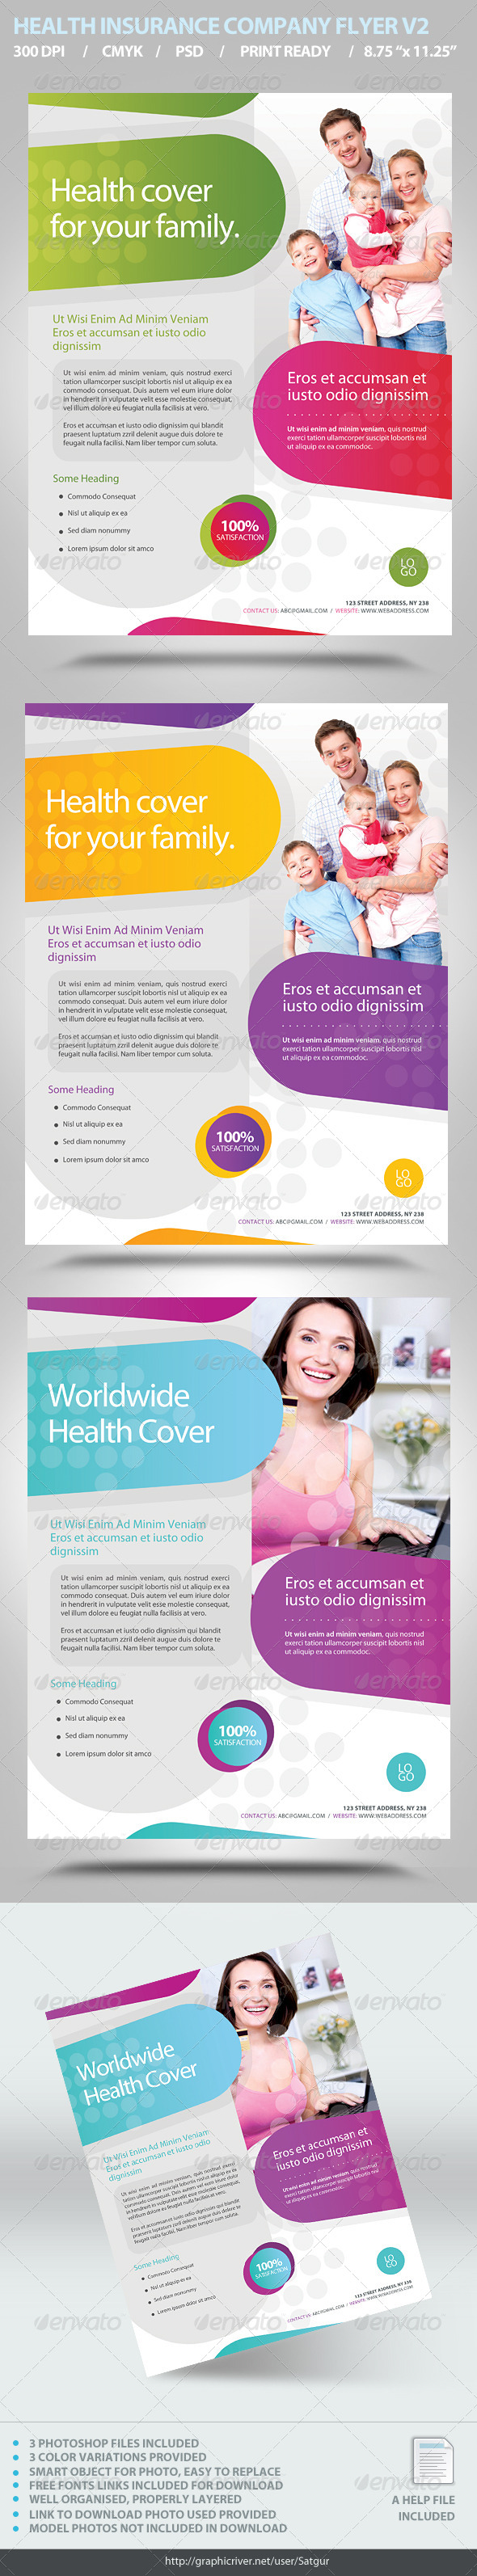 Health Insurance Flyer Template V2 - Corporate Flyers